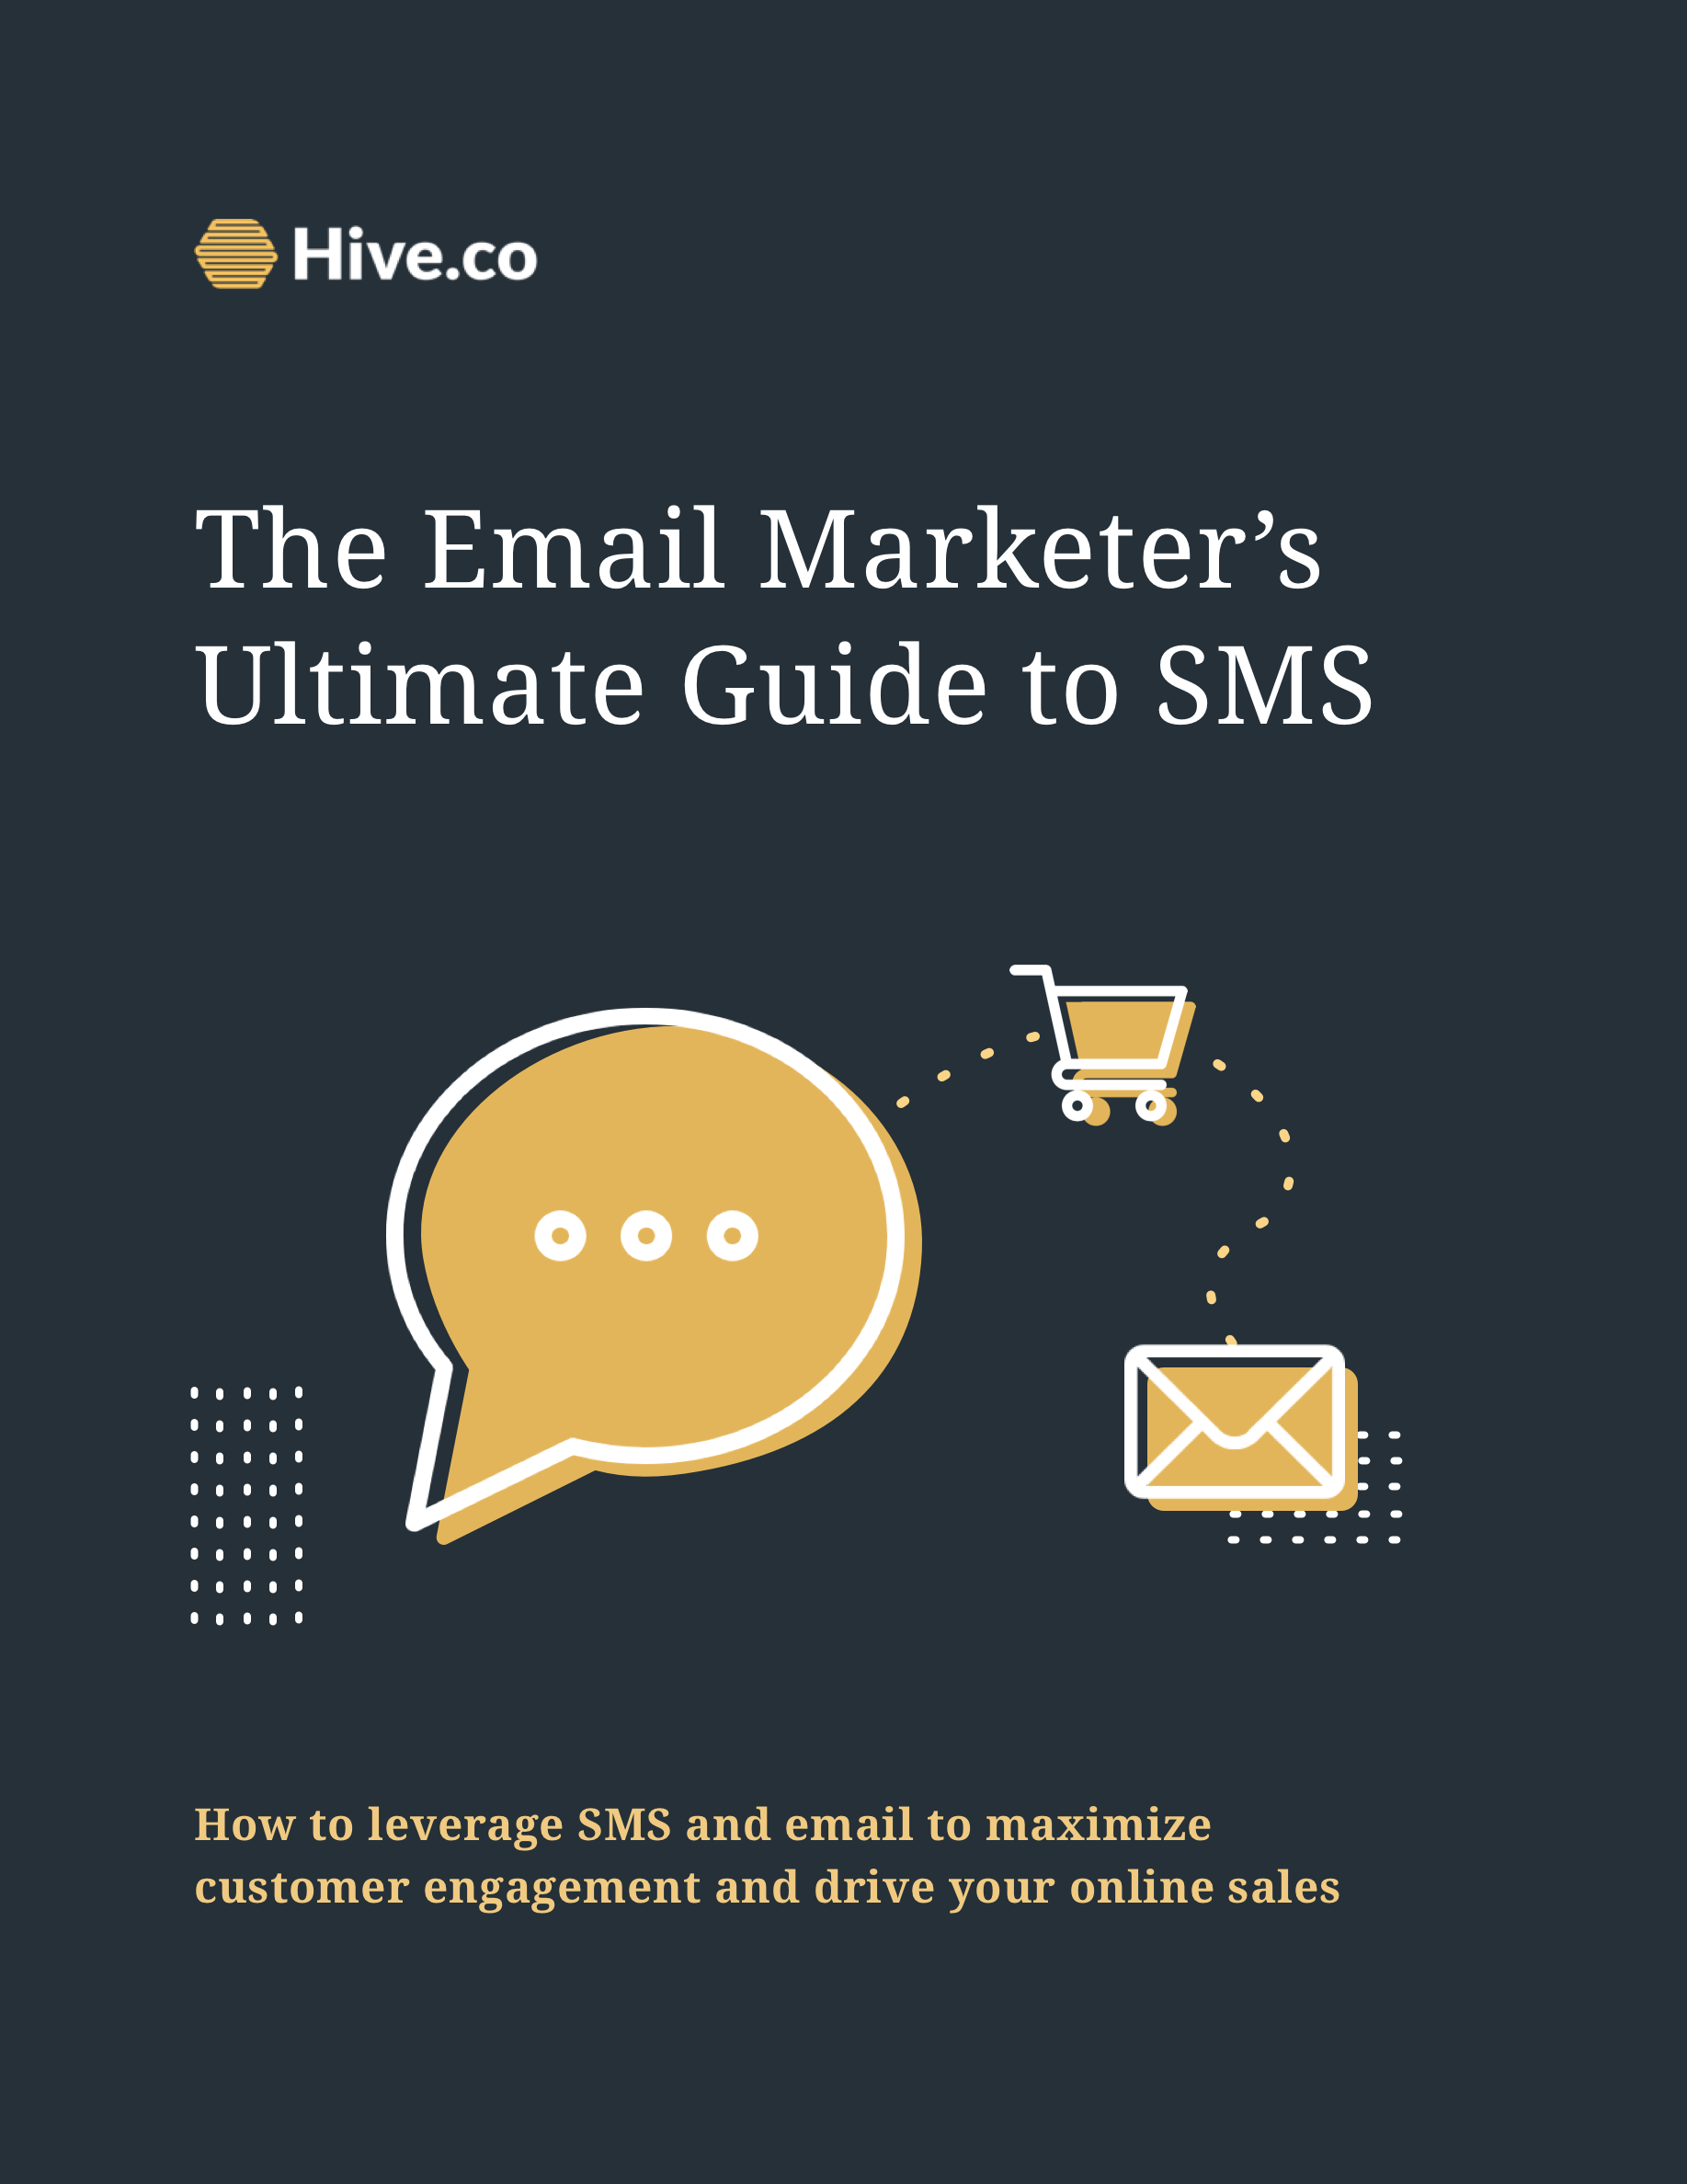 Hive's ultimate guide to SMS